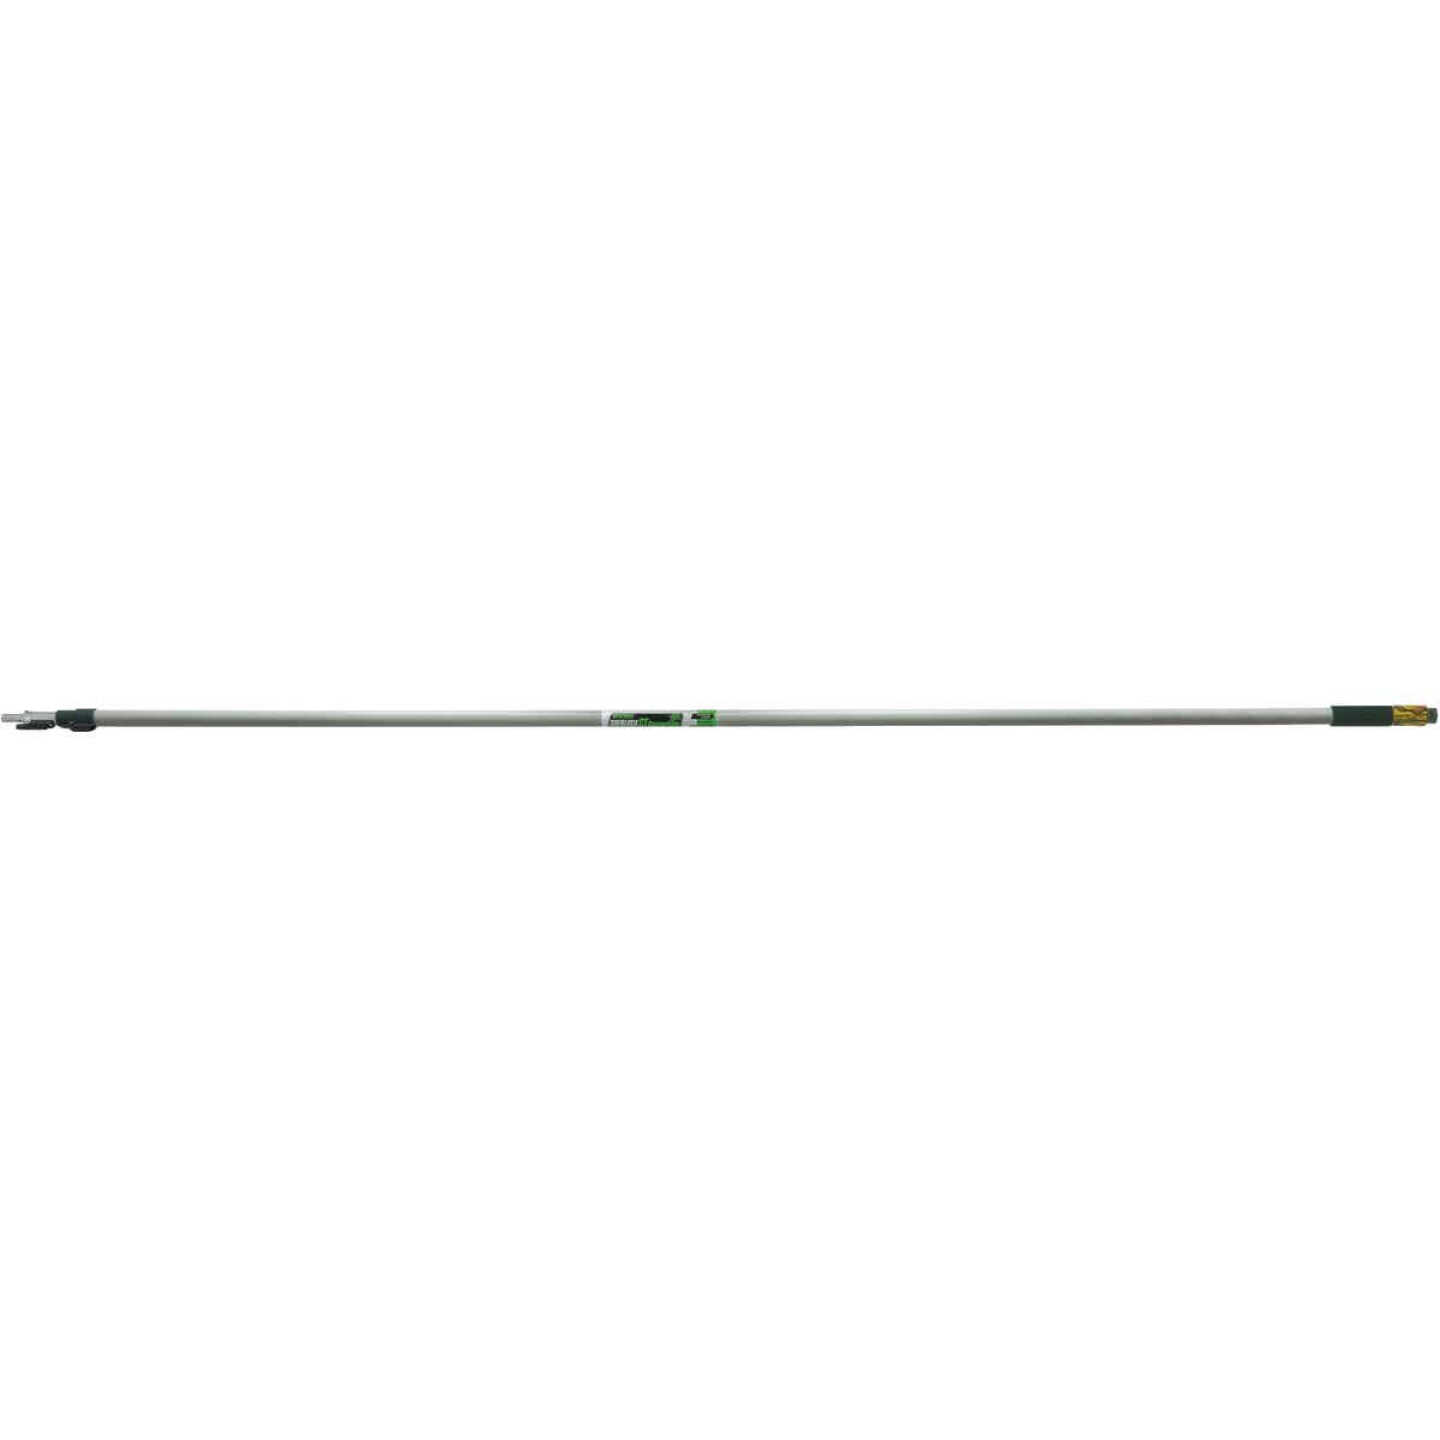 Wooster Sherlock GT 8 Ft. To 16 Ft. Convertible Extension Pole Image 1